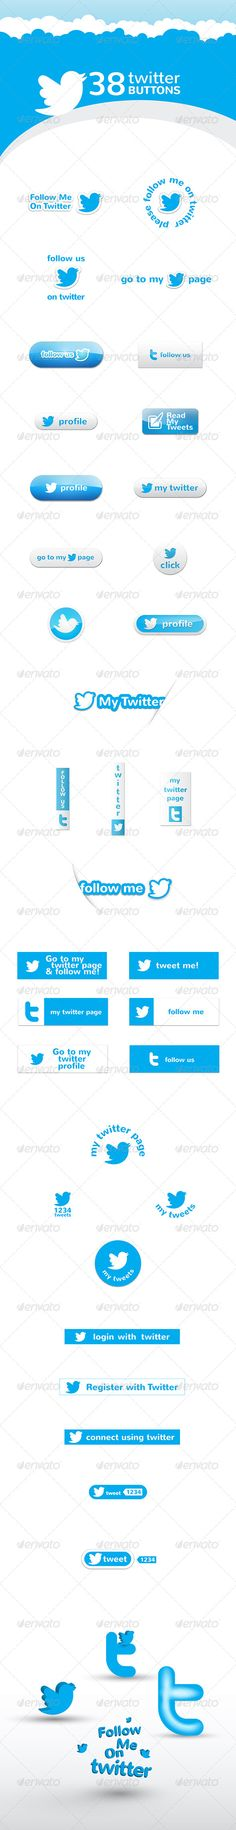 Twitter Buttons  #GraphicRiver             Twitter Buttons        Futures:   38 Buttons   Vector Ai and EPS files  Fully layered PSD file.   Transparent PNG's for web use.  PDF file included    We offer support act within 24 hours. Please feel free to contact us if you have any questions, we will be glad to help you.      Check my other files      Realistic Logo Mock-up          Skype Buttons                     Created: 5April13 GraphicsFilesIncluded: PhotoshopPSD #TransparentPNG #VectorEPS #AIIllustrator HighResolution: Yes Layered: Yes MinimumAdobeCSVersion: CS PixelDimensions: 600x400 Tags: buttons #clean #graphic #icons #messages #paper #psd #transparent #tweet #twitter #twitterbutton #twittermessages #twittertemplate #vector